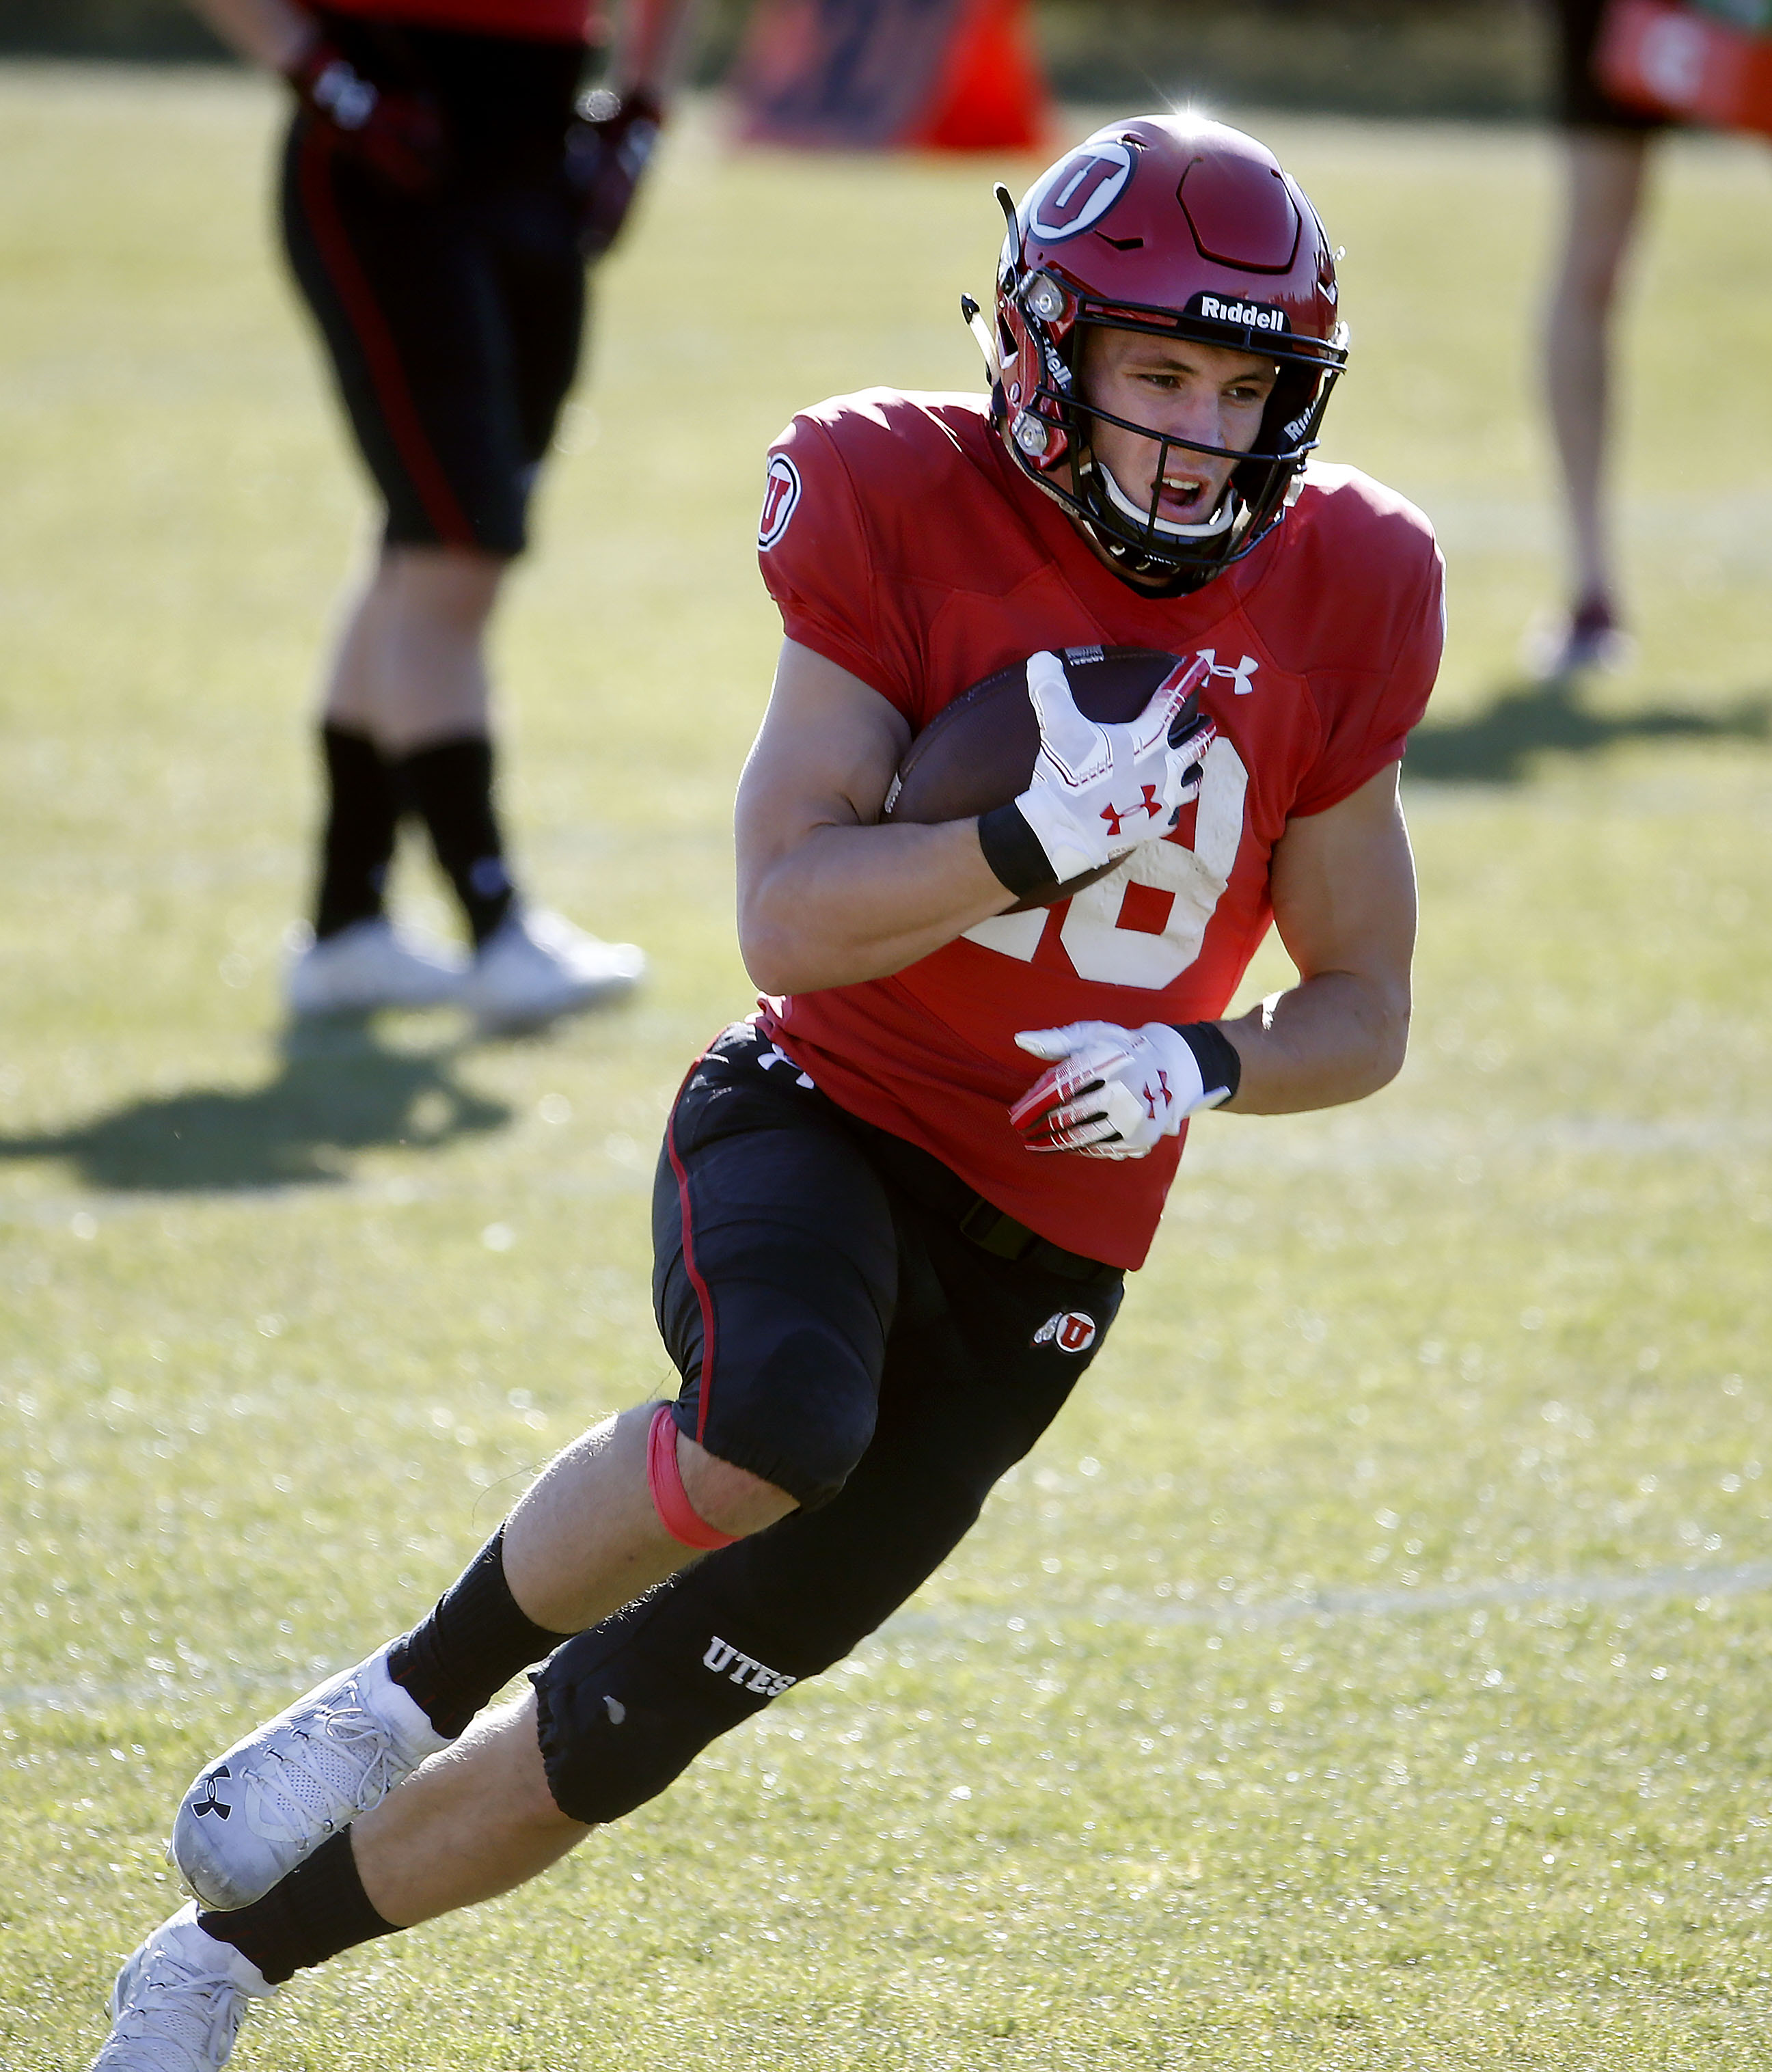 Utah Utes wide receiver Britain Covey (18) practices at the Spence and Cleone Eccles Football Center in Salt Lake City on Thursday, March 5, 2020.